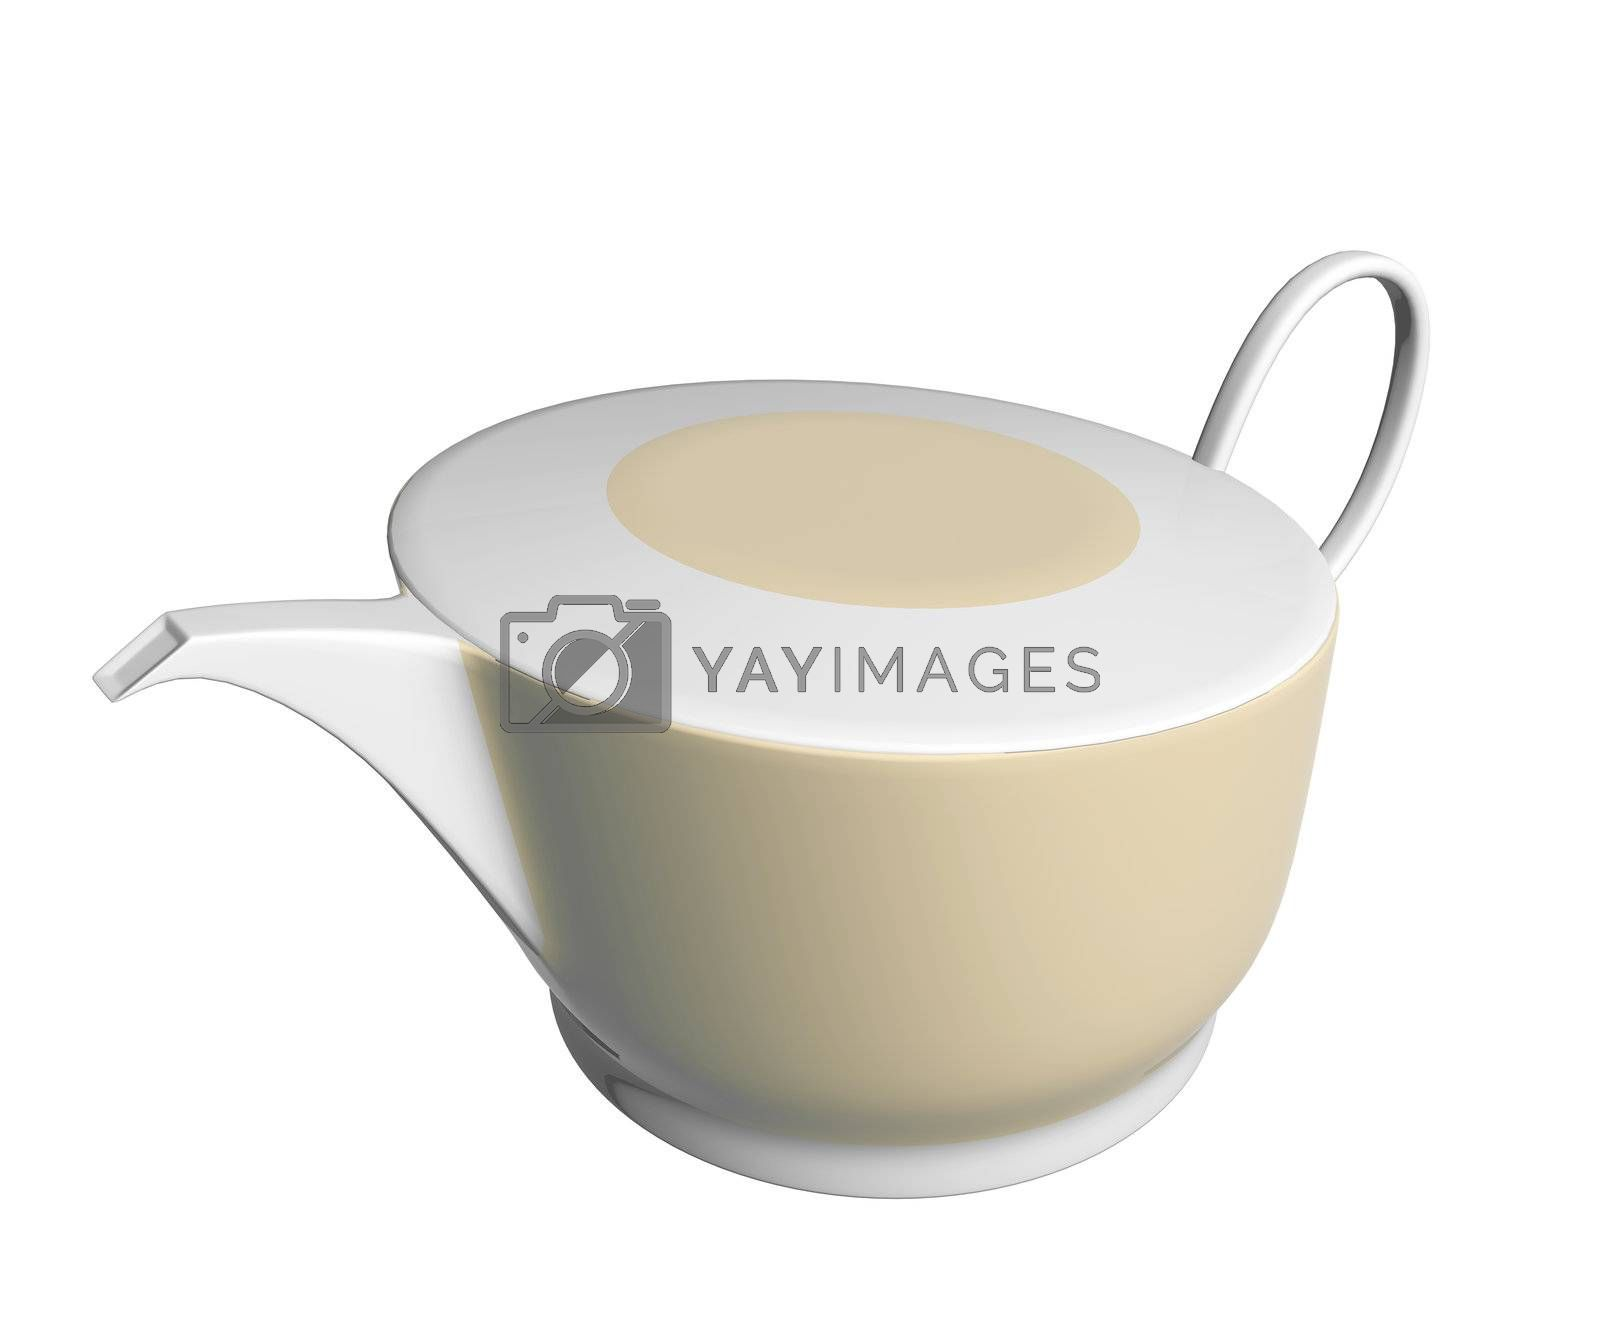 White and beige ceramic tea pot, 3D illustration, isolated against a white background